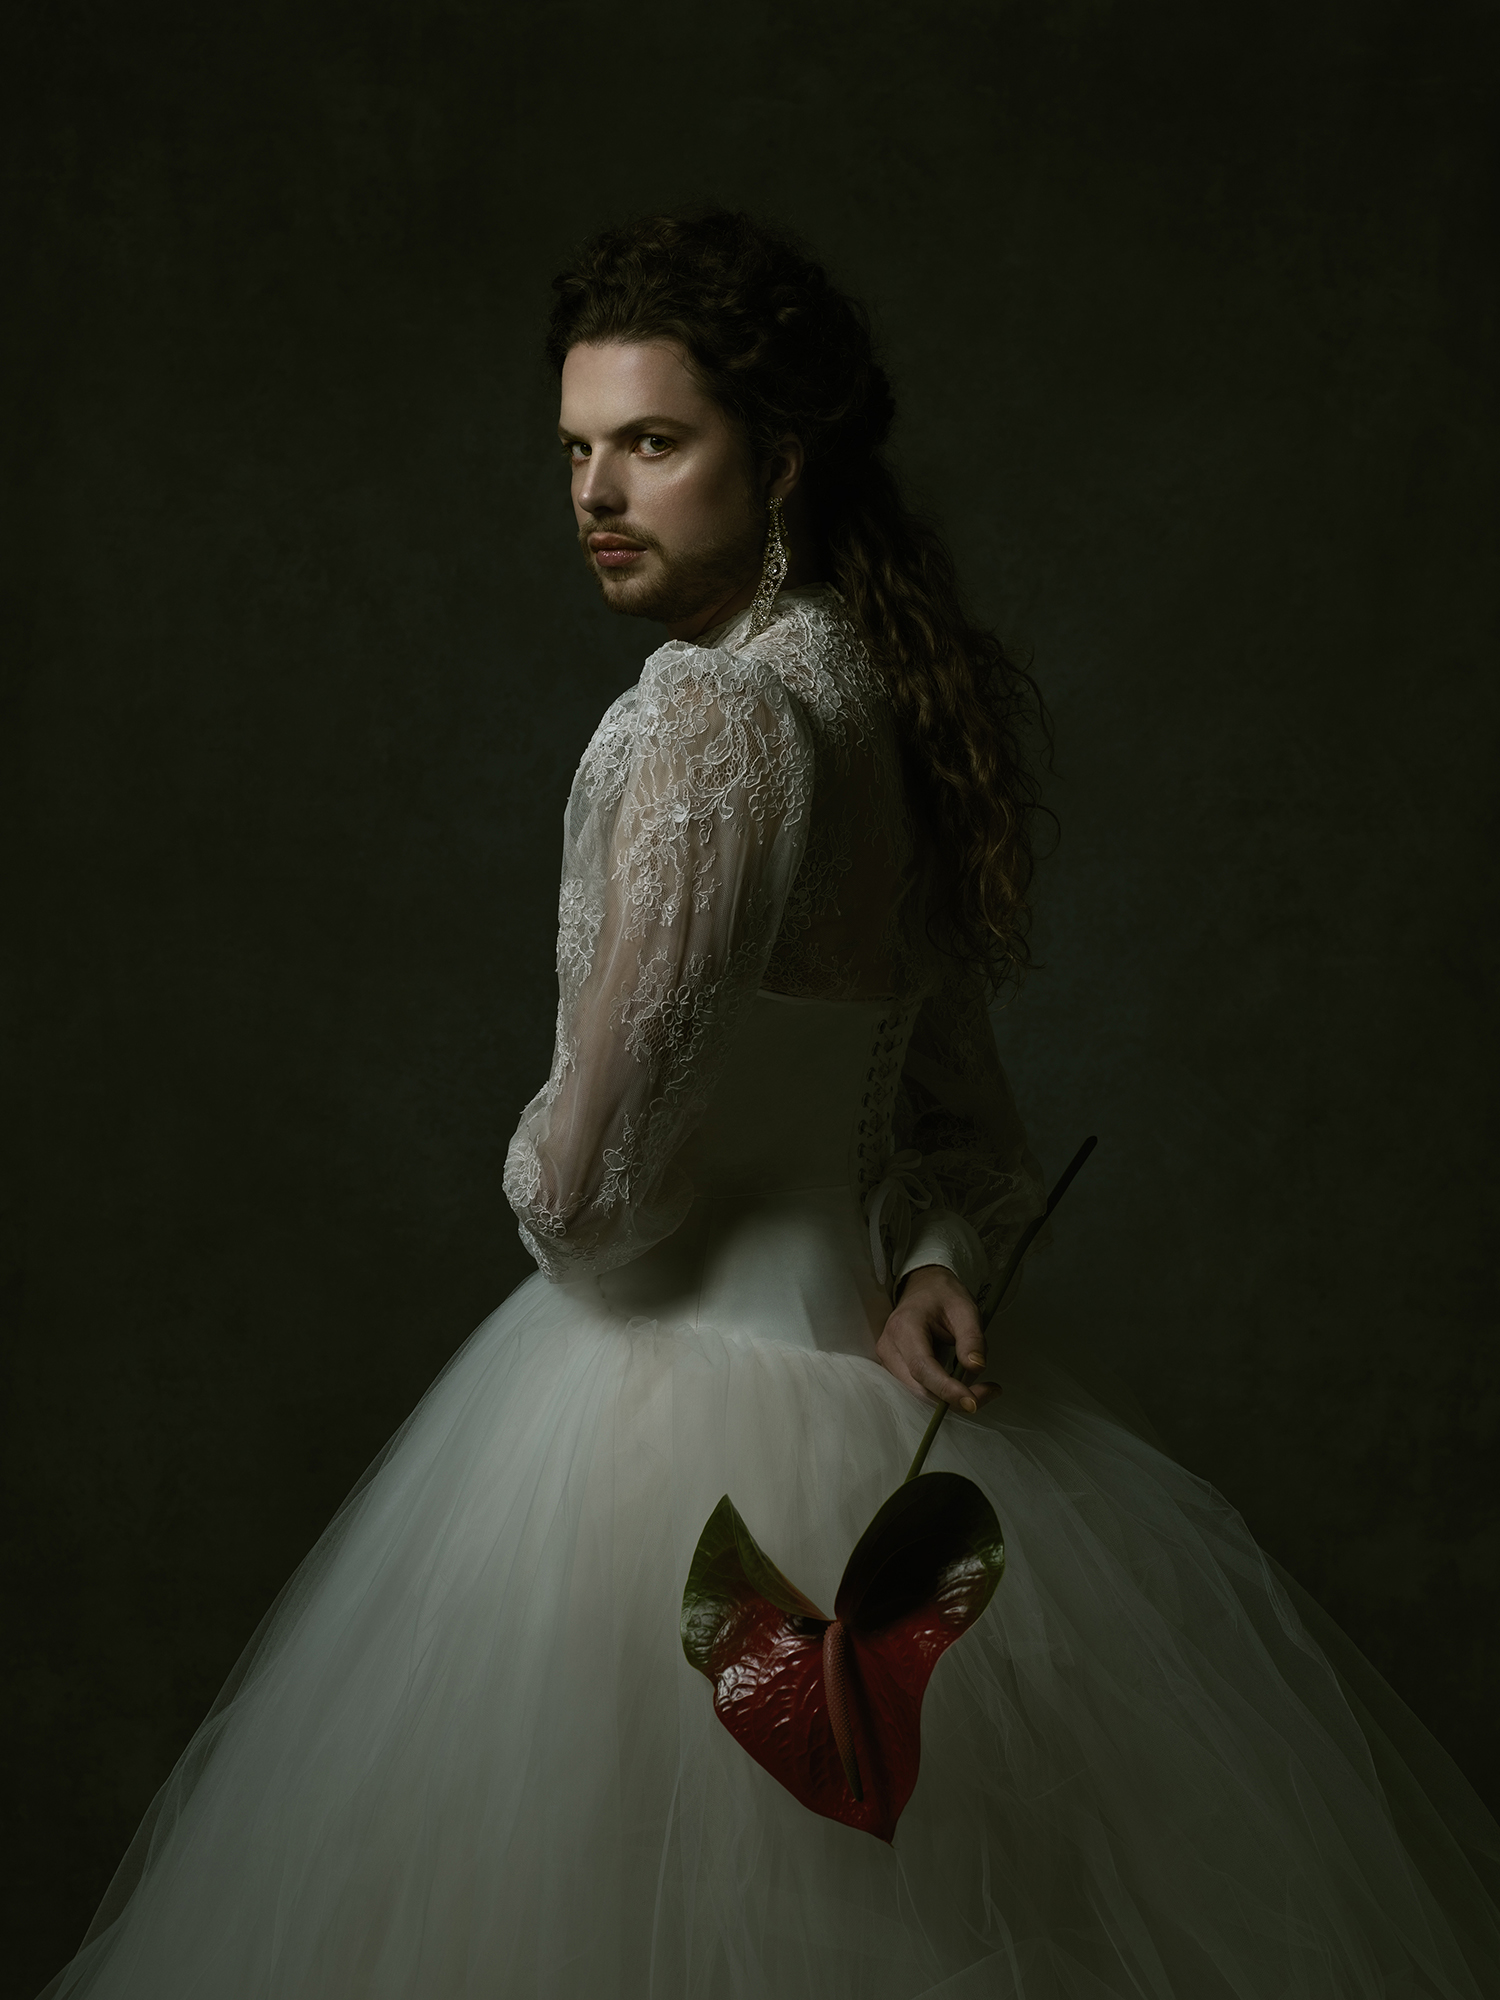 The Bride II